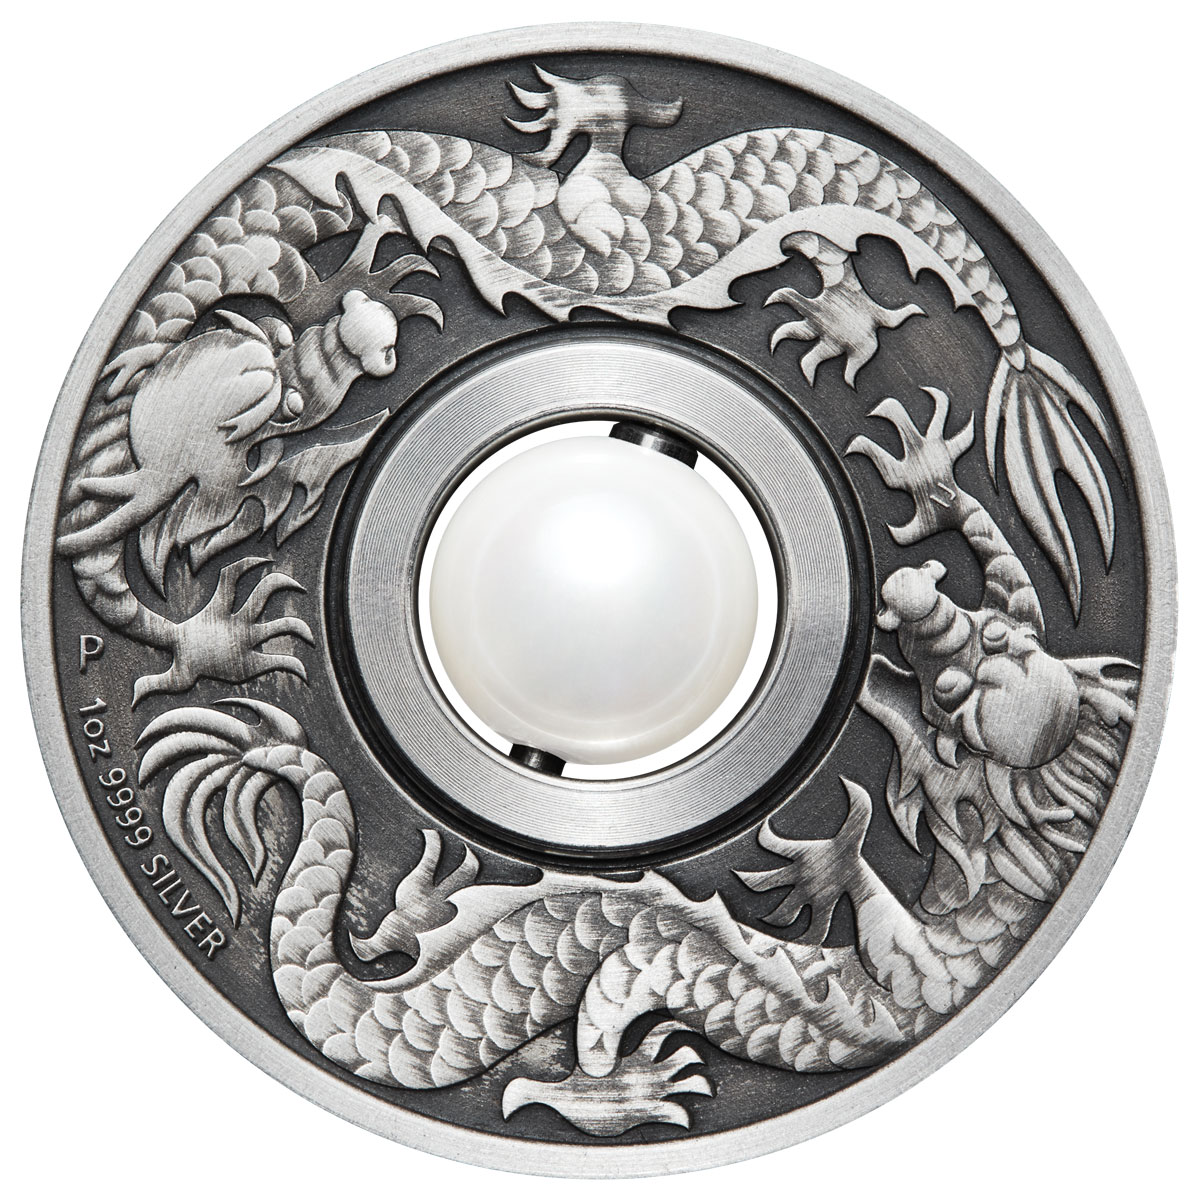 2017 Australia 1 oz Silver Dragon & Pearl Antiqued $1 Coin GEM BU